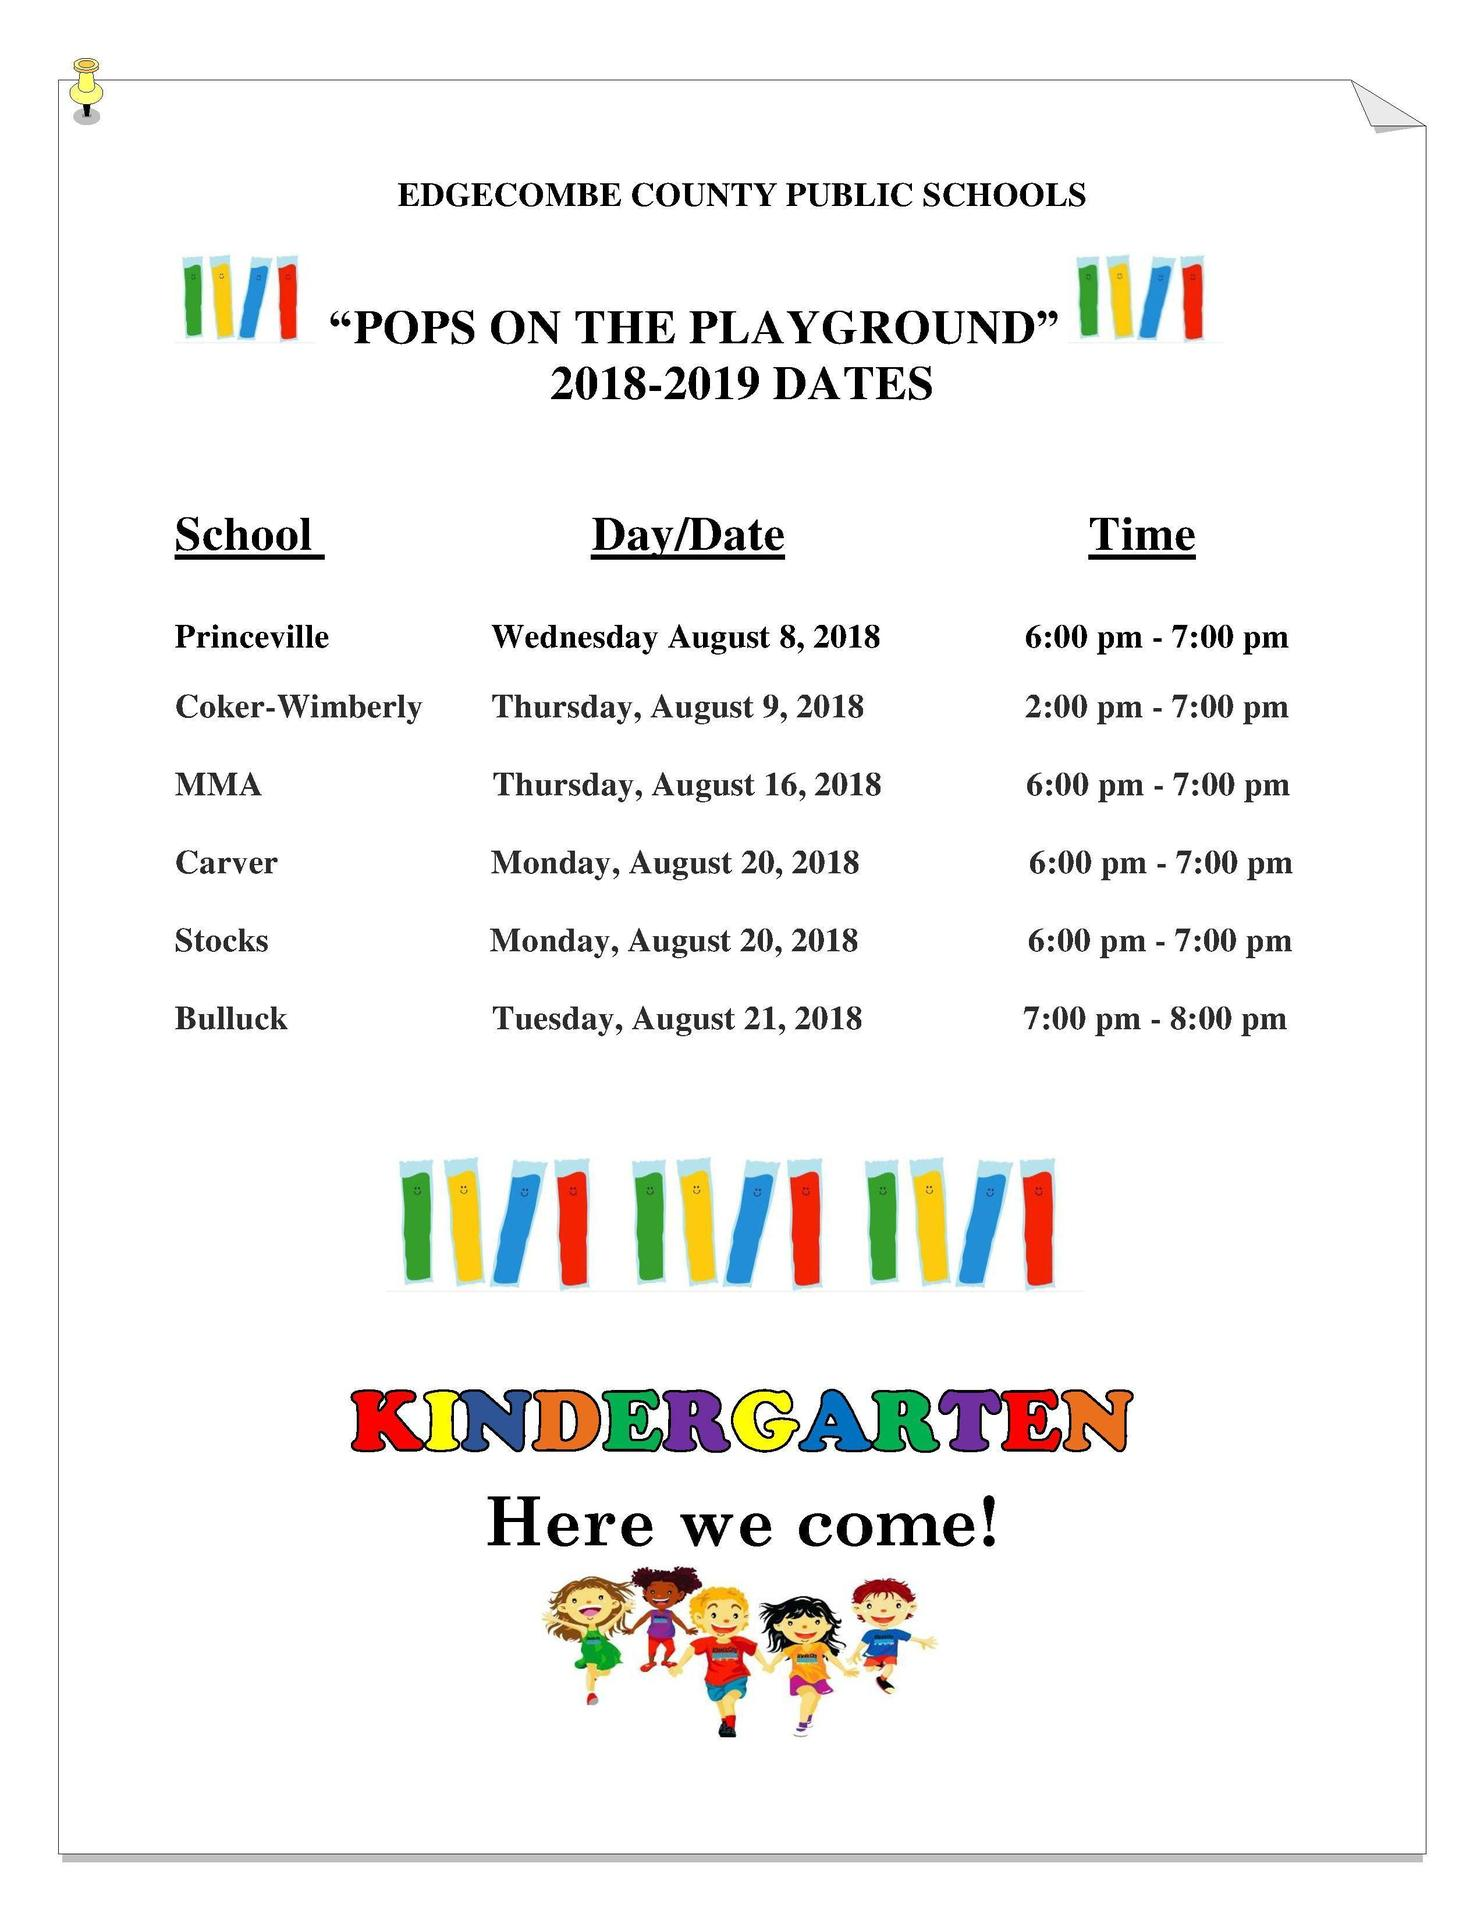 Pops on the Playground times and locations